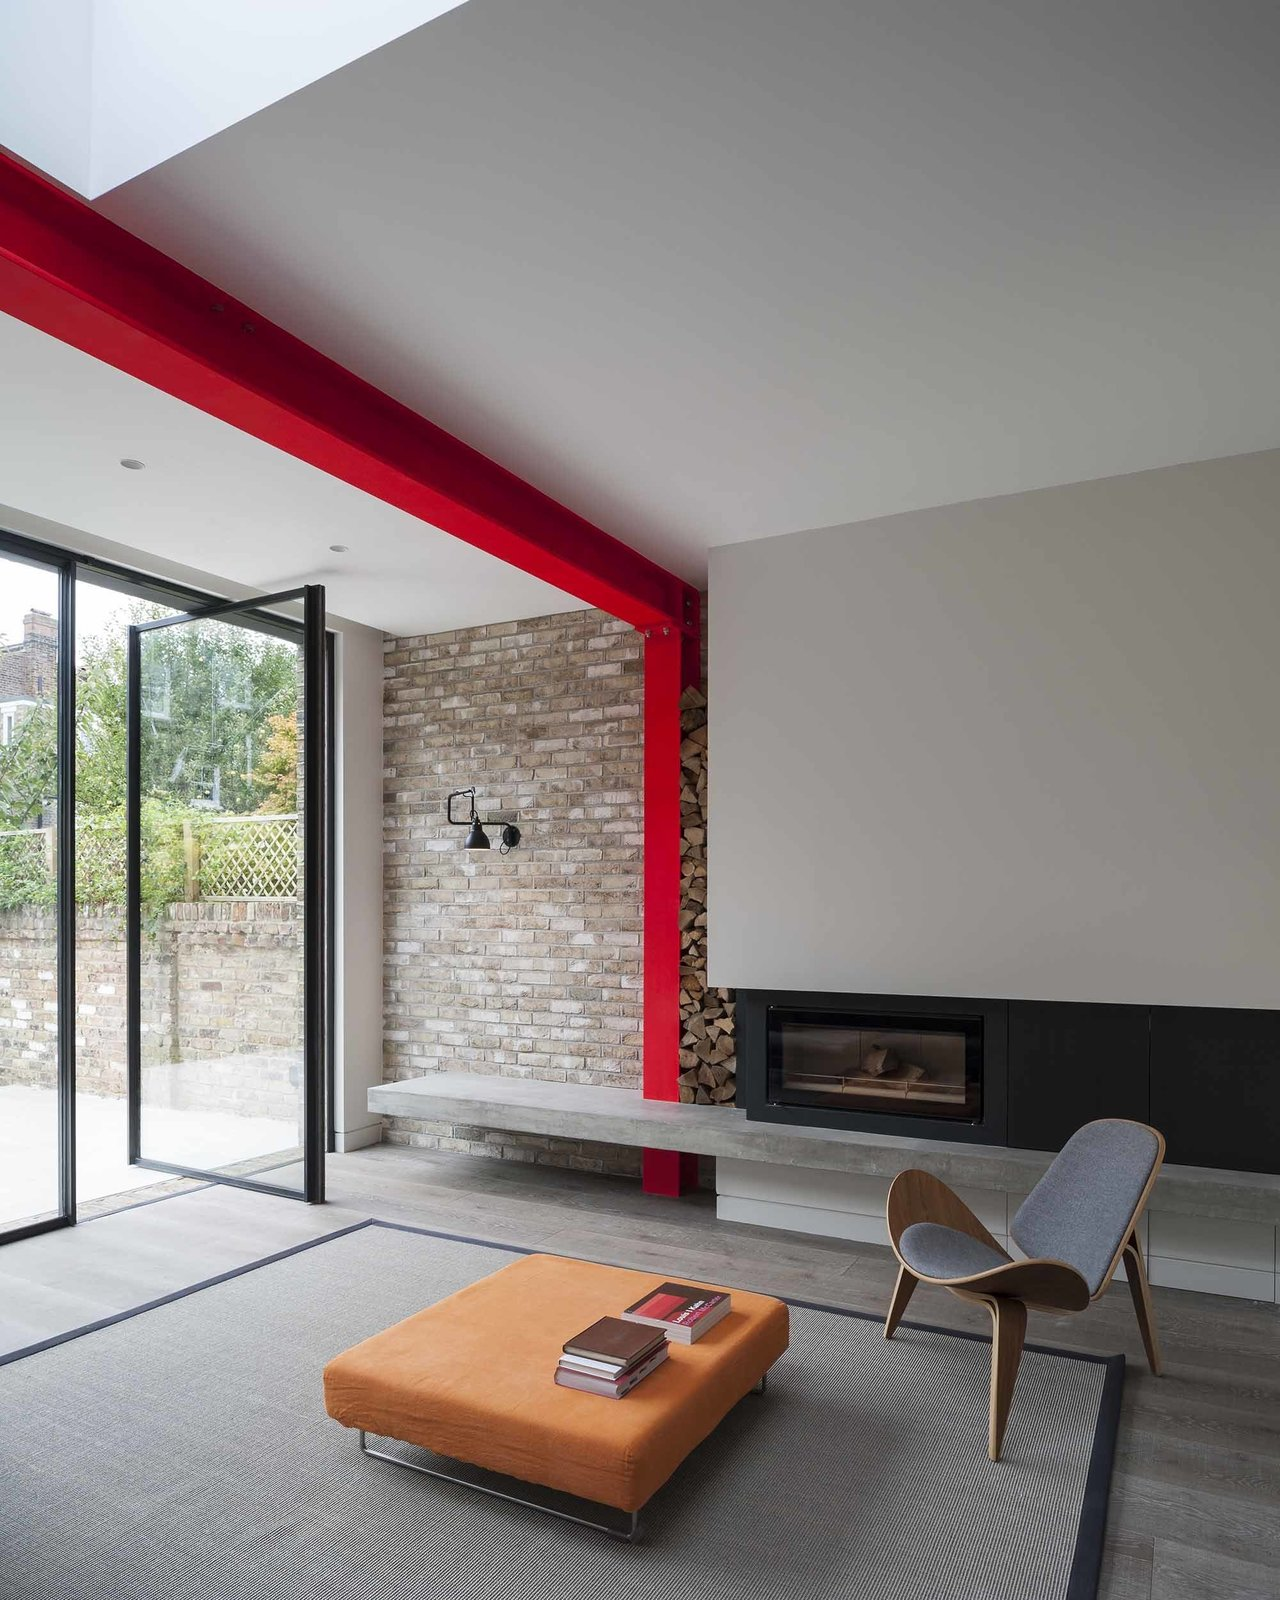 A Hans Wegner Shell chair by Carl Hansen & Søn outfits the living room, which is defined by a steel beam painted sharp red.  97+ Modern Fireplace Ideas from A London Town House Renovation Beaming with Personality